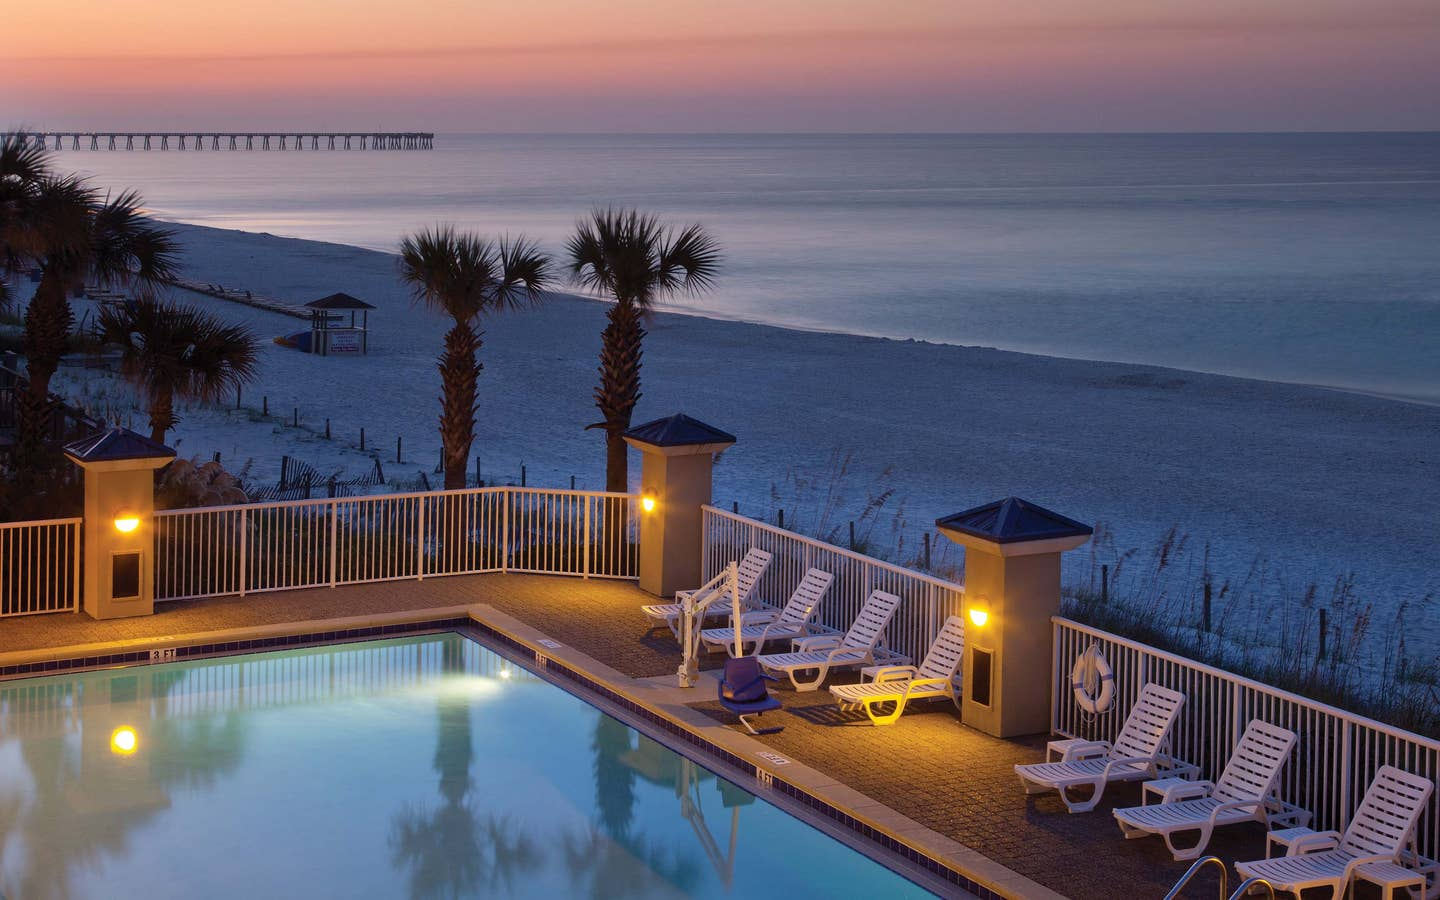 View of outdoor pool looking onto beach at sunset at Panama City Beach Resort in Florida.